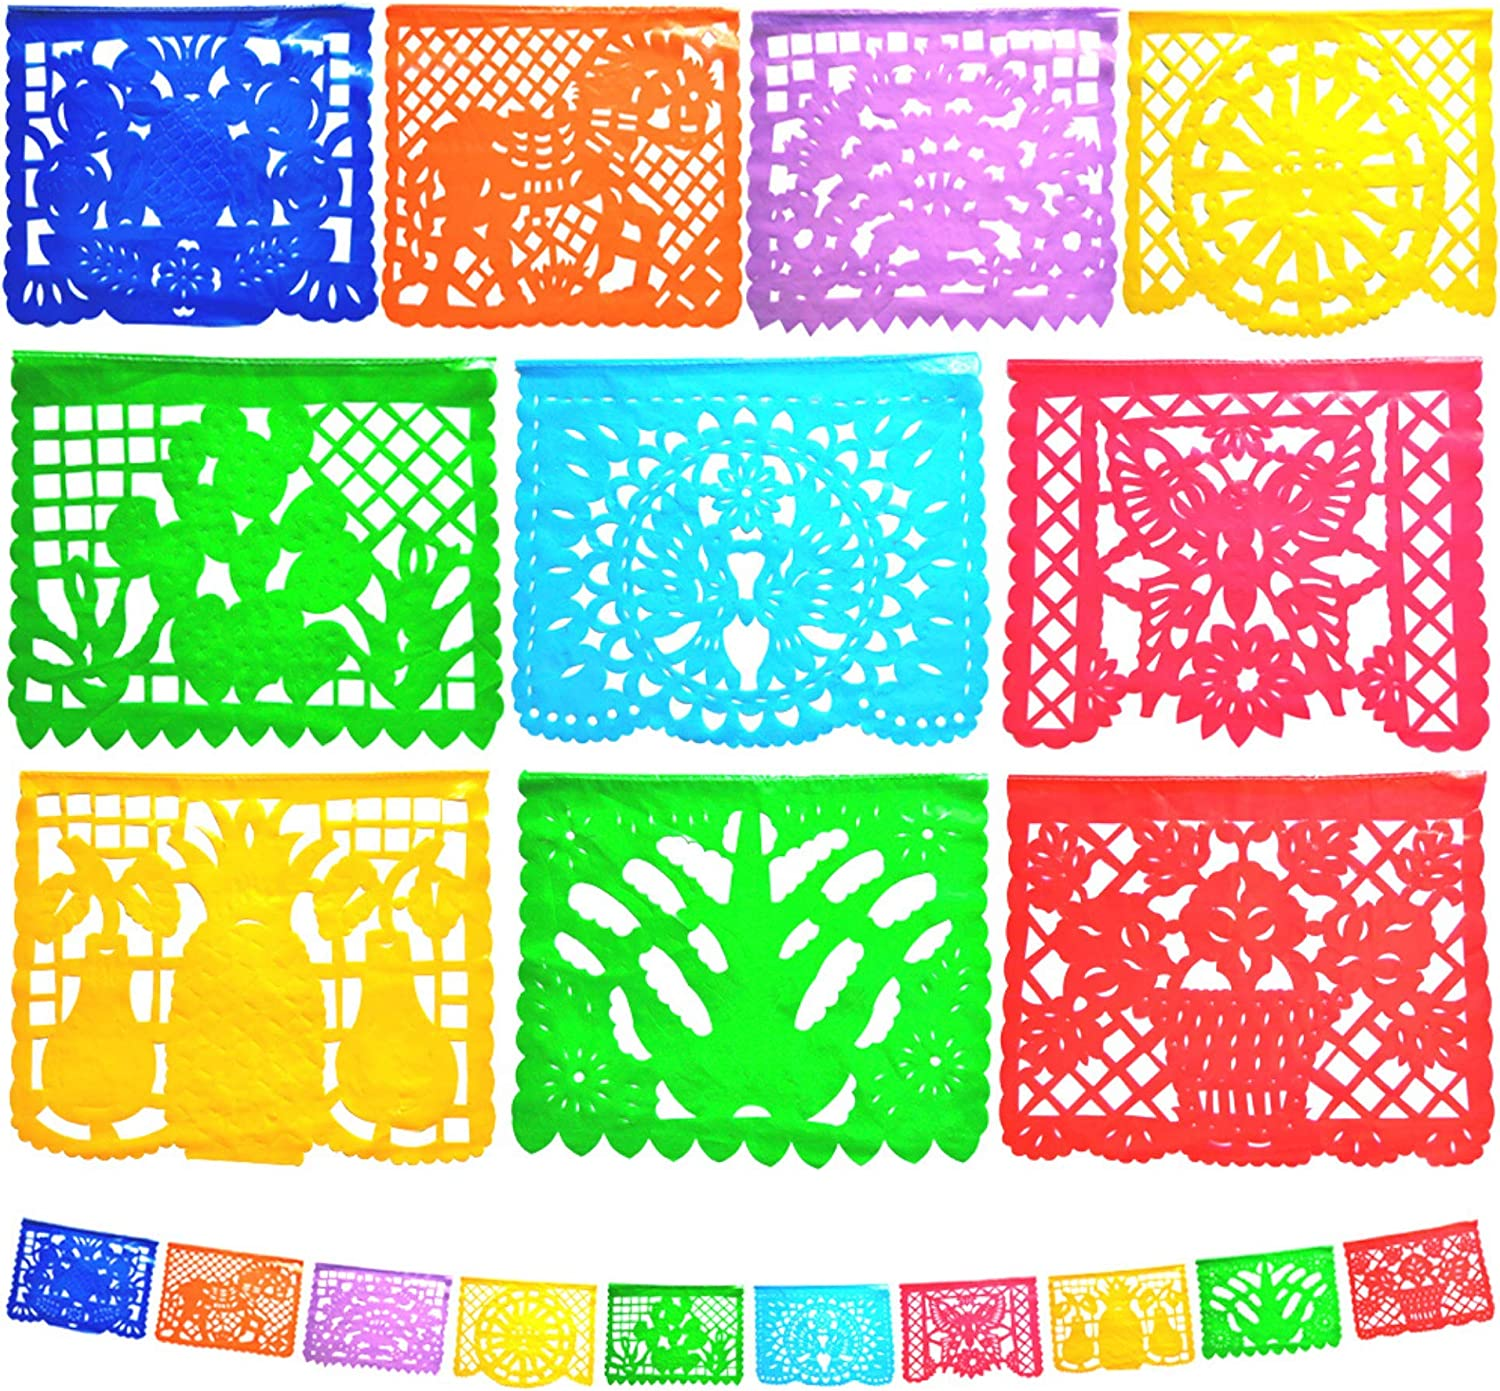 Papel Picado -2 PACK- Large Mexican Fiesta Banner Mexican Party Decorations 20 Plastic Panels -Flags Fiesta Deco Garland Supplies -Handmade